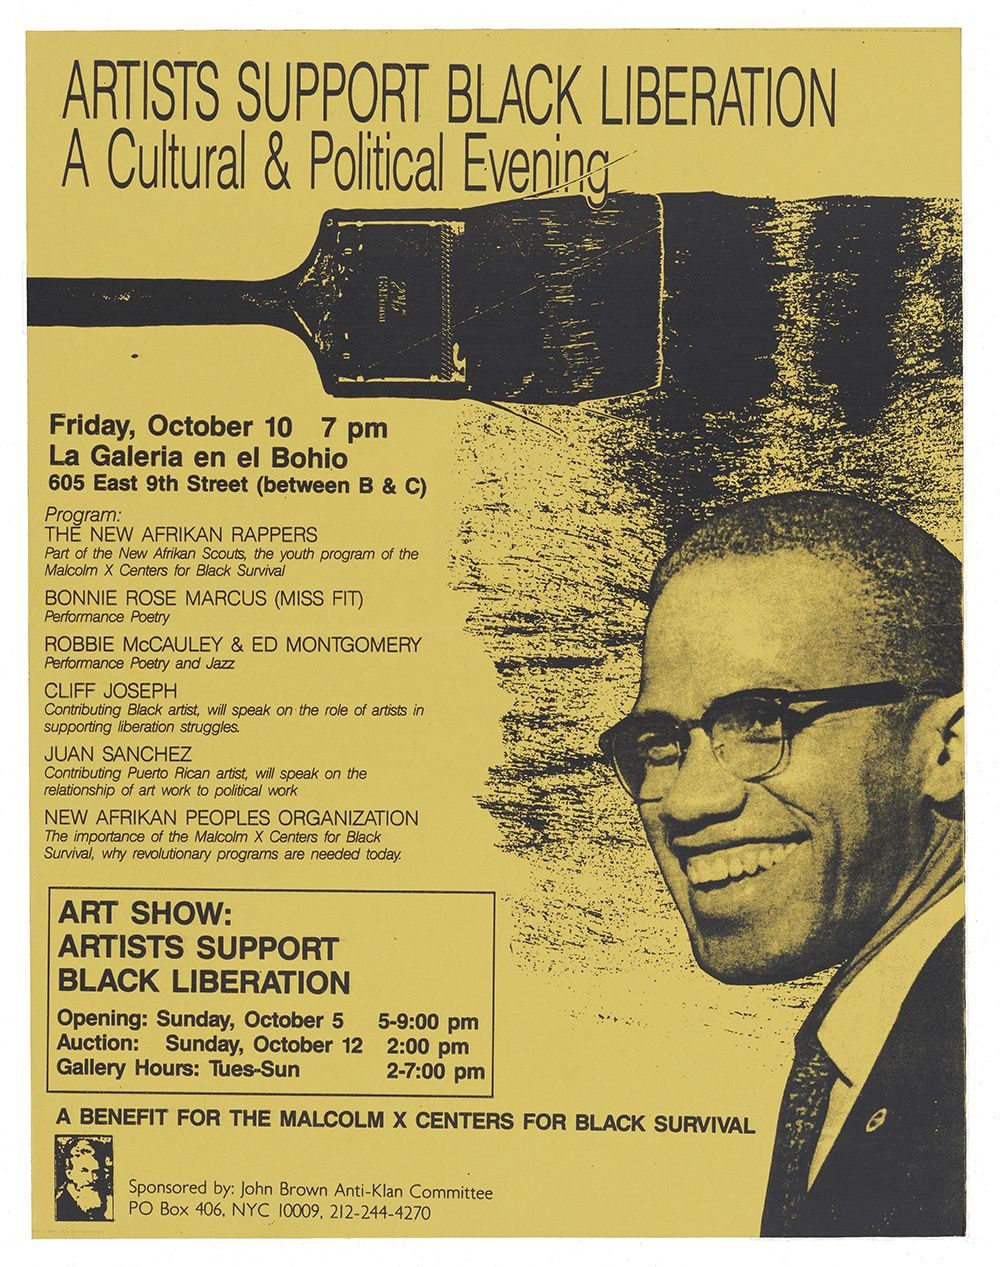 Flyer with text and graphics of a paintbrush making paint marks, and Malcolm X, printed with black ink on brightyellow paper.